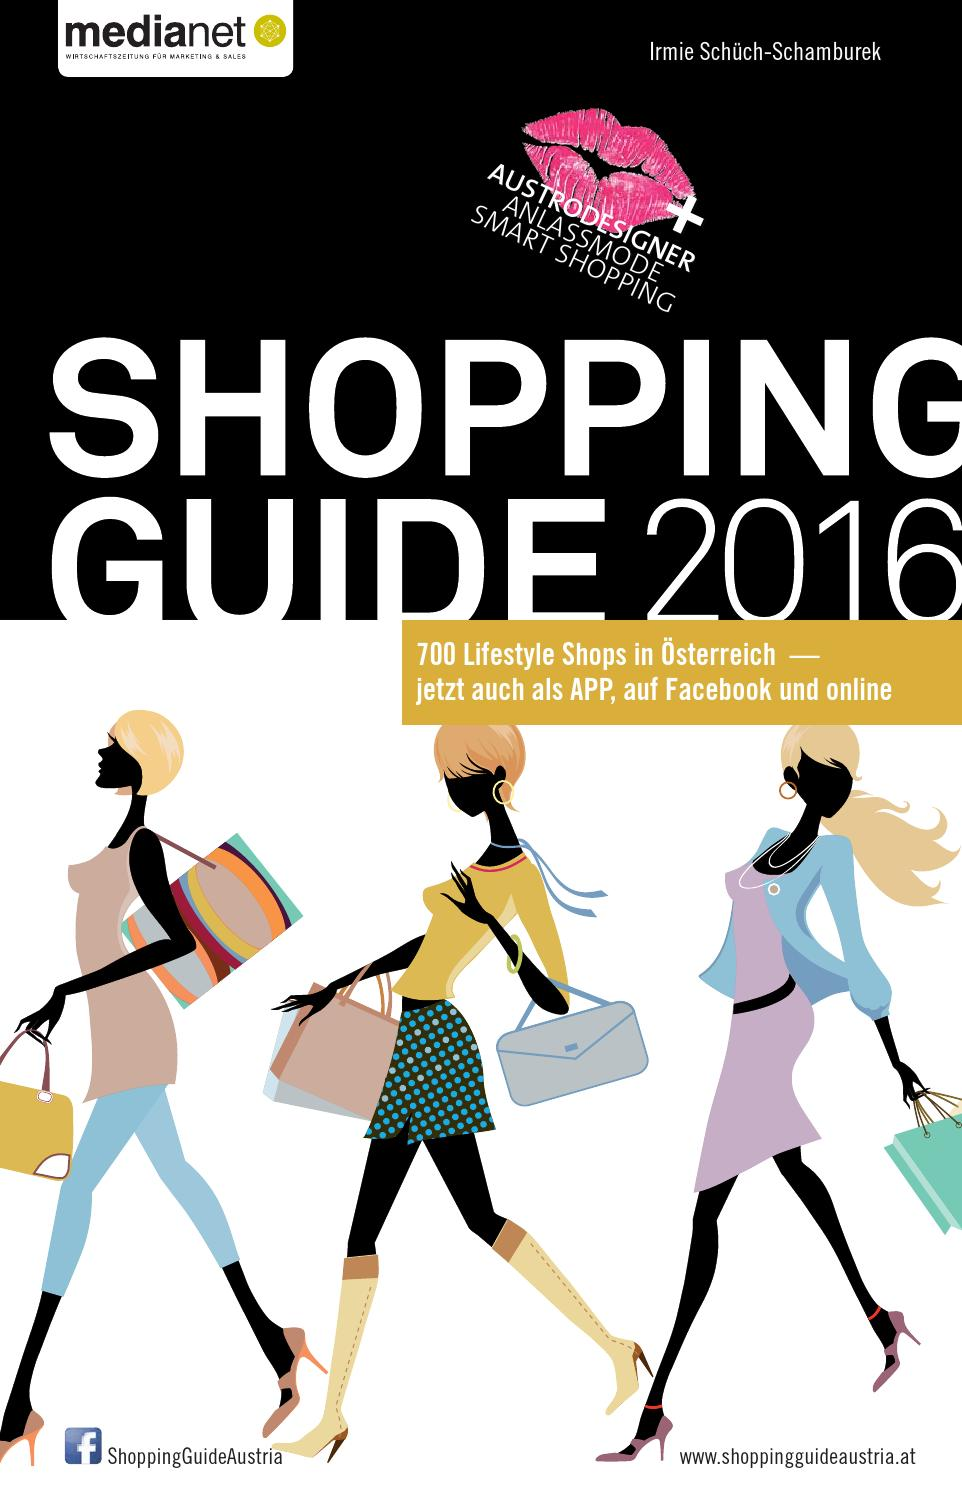 Guide 2016 medianet issuu by Shopping XZTPiuOk